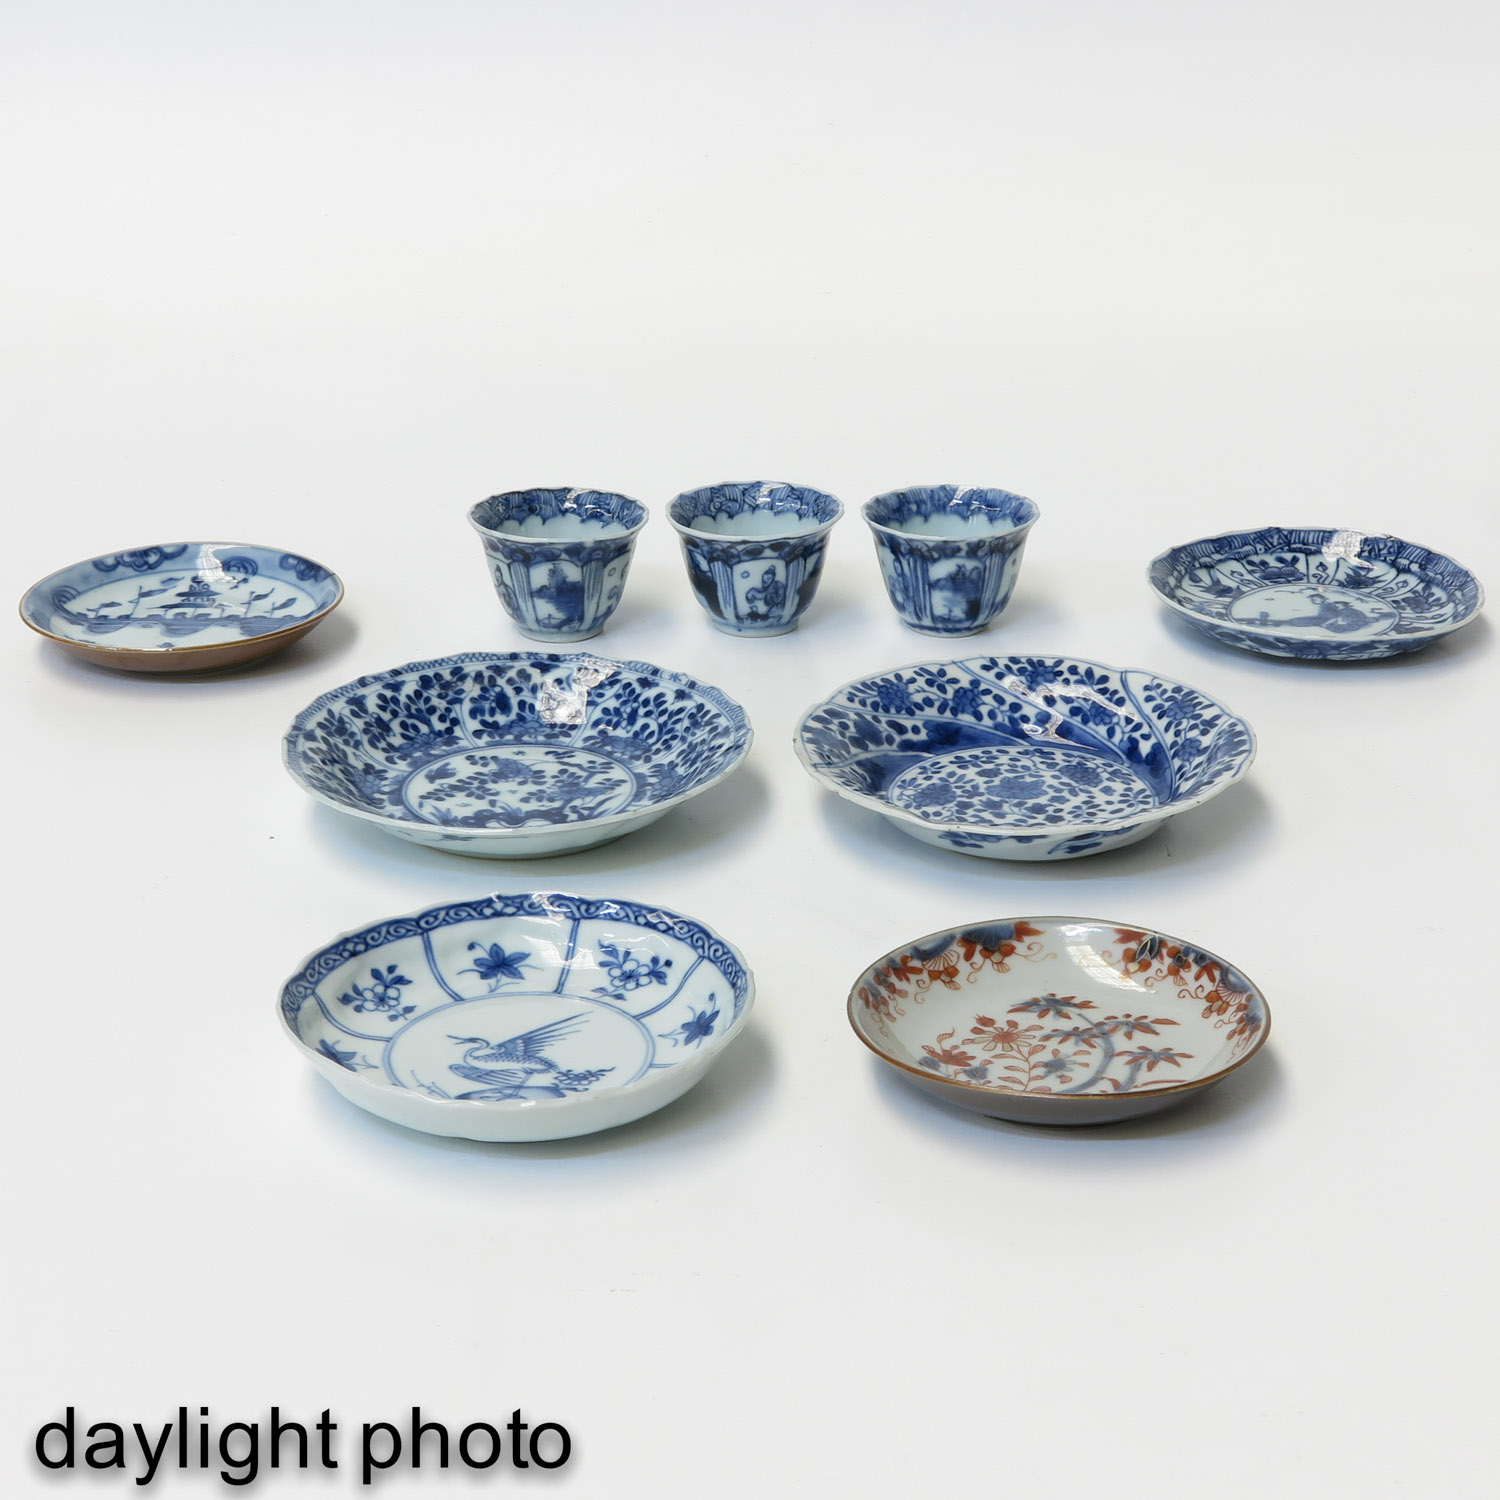 A Collection of Cups and Saucers - Image 3 of 4